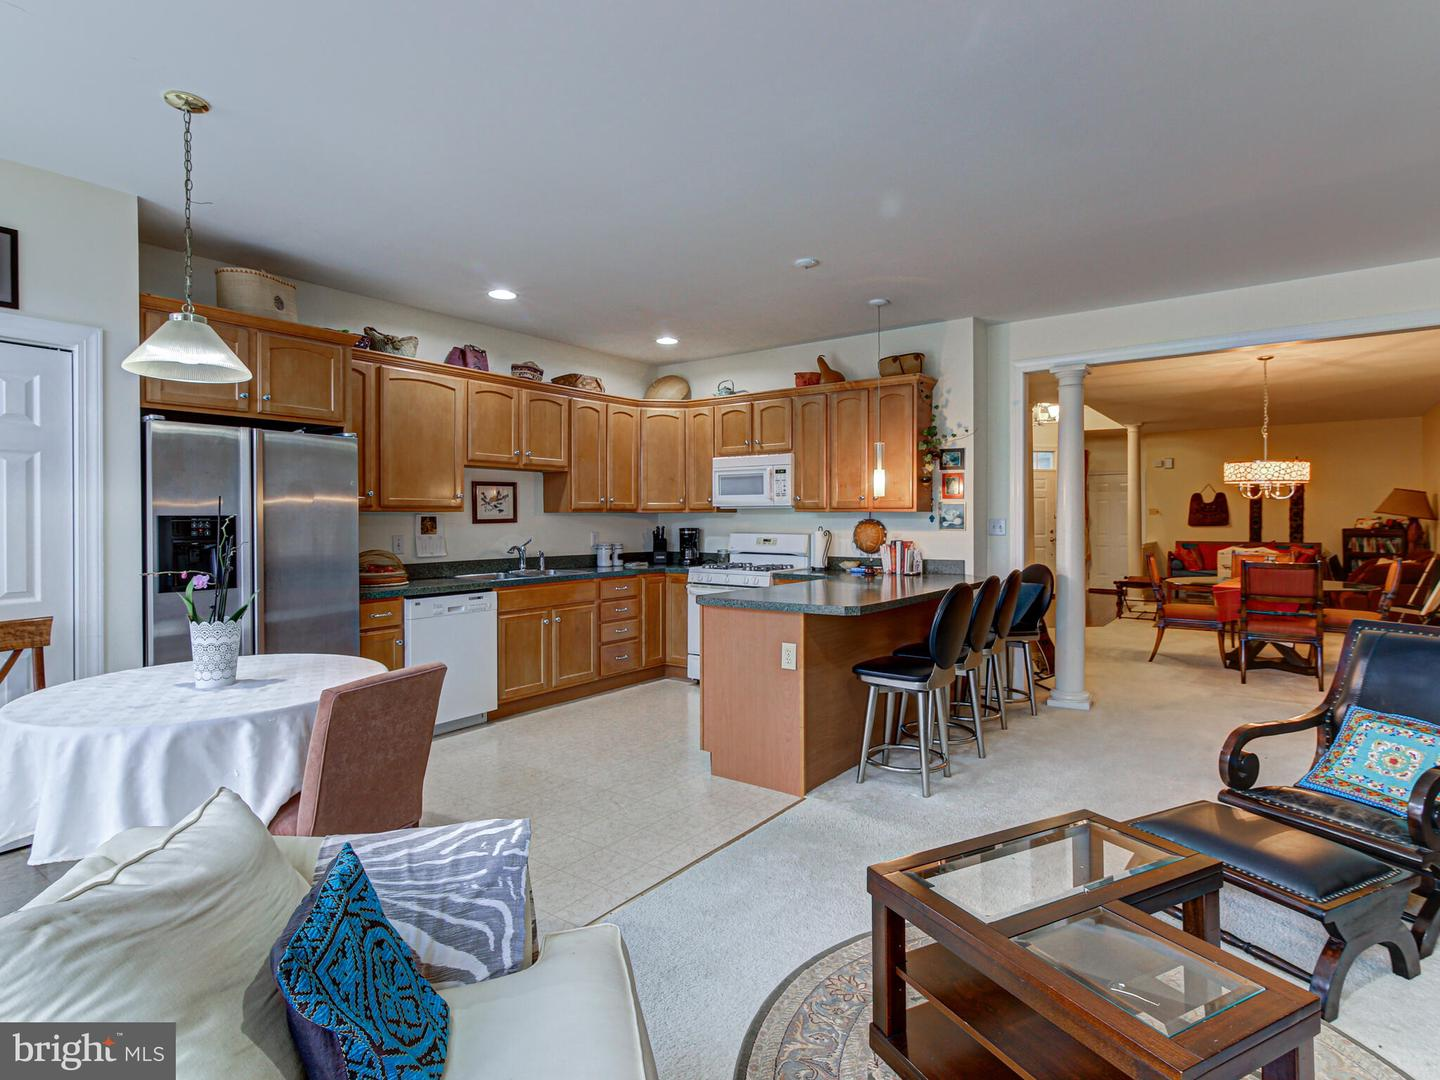 1605 Whispering Brooke Drive Newtown Square, PA 19073